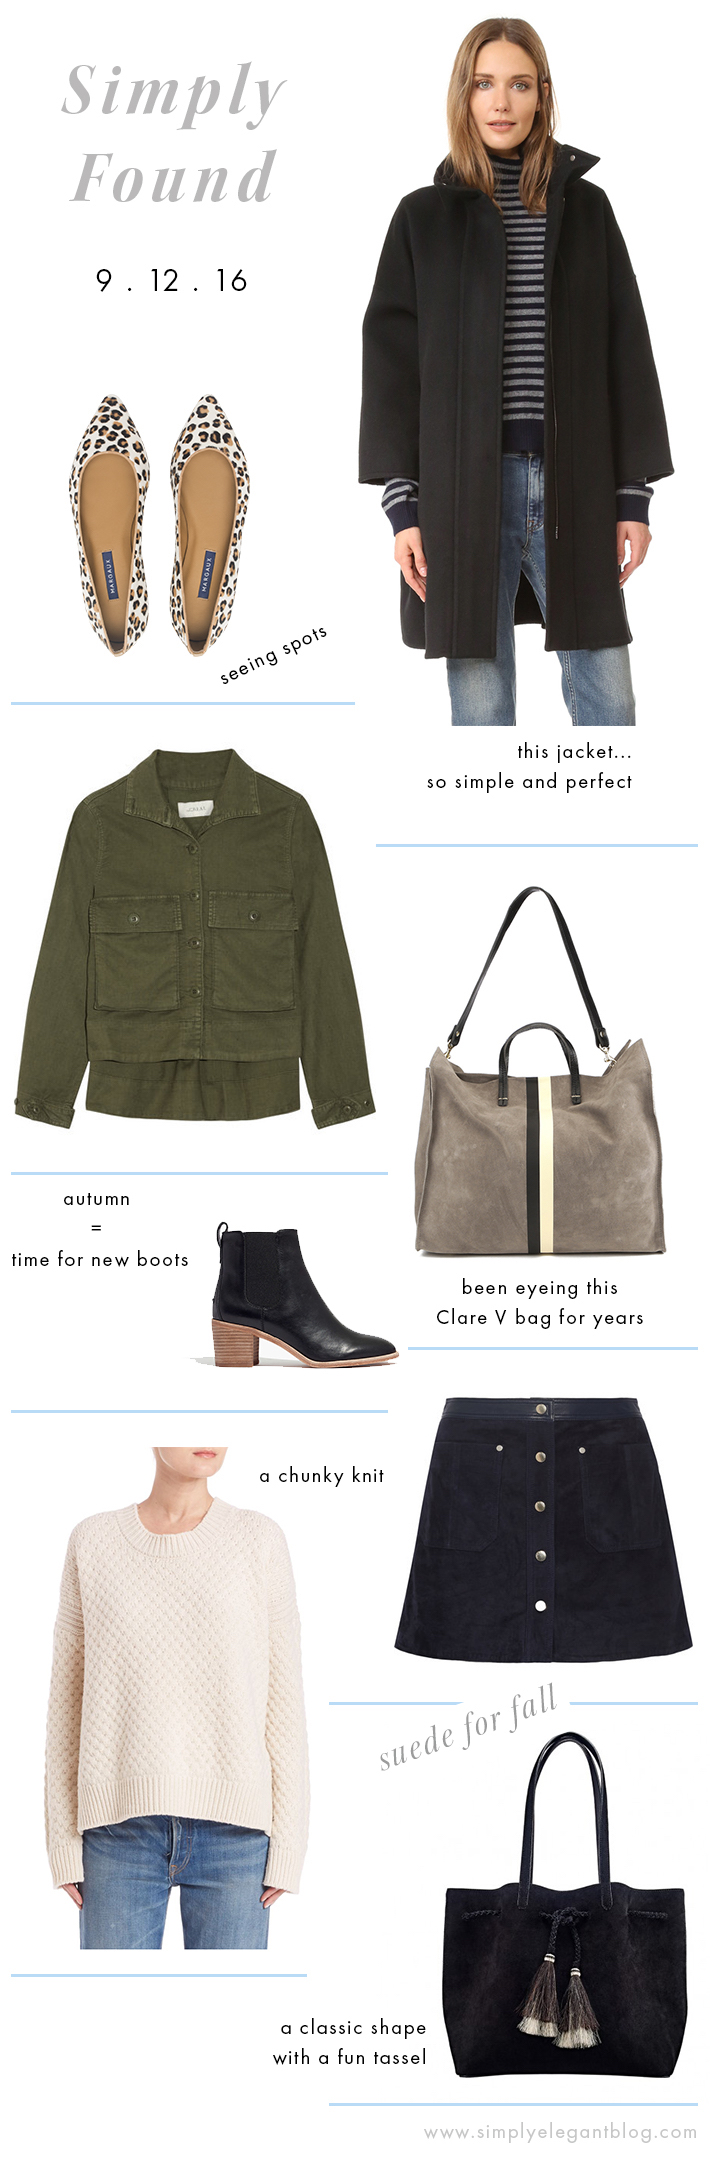 Shopping Wish List for Fall - Vince Wool Jacket, The Great Jacket and Clare V Bag.